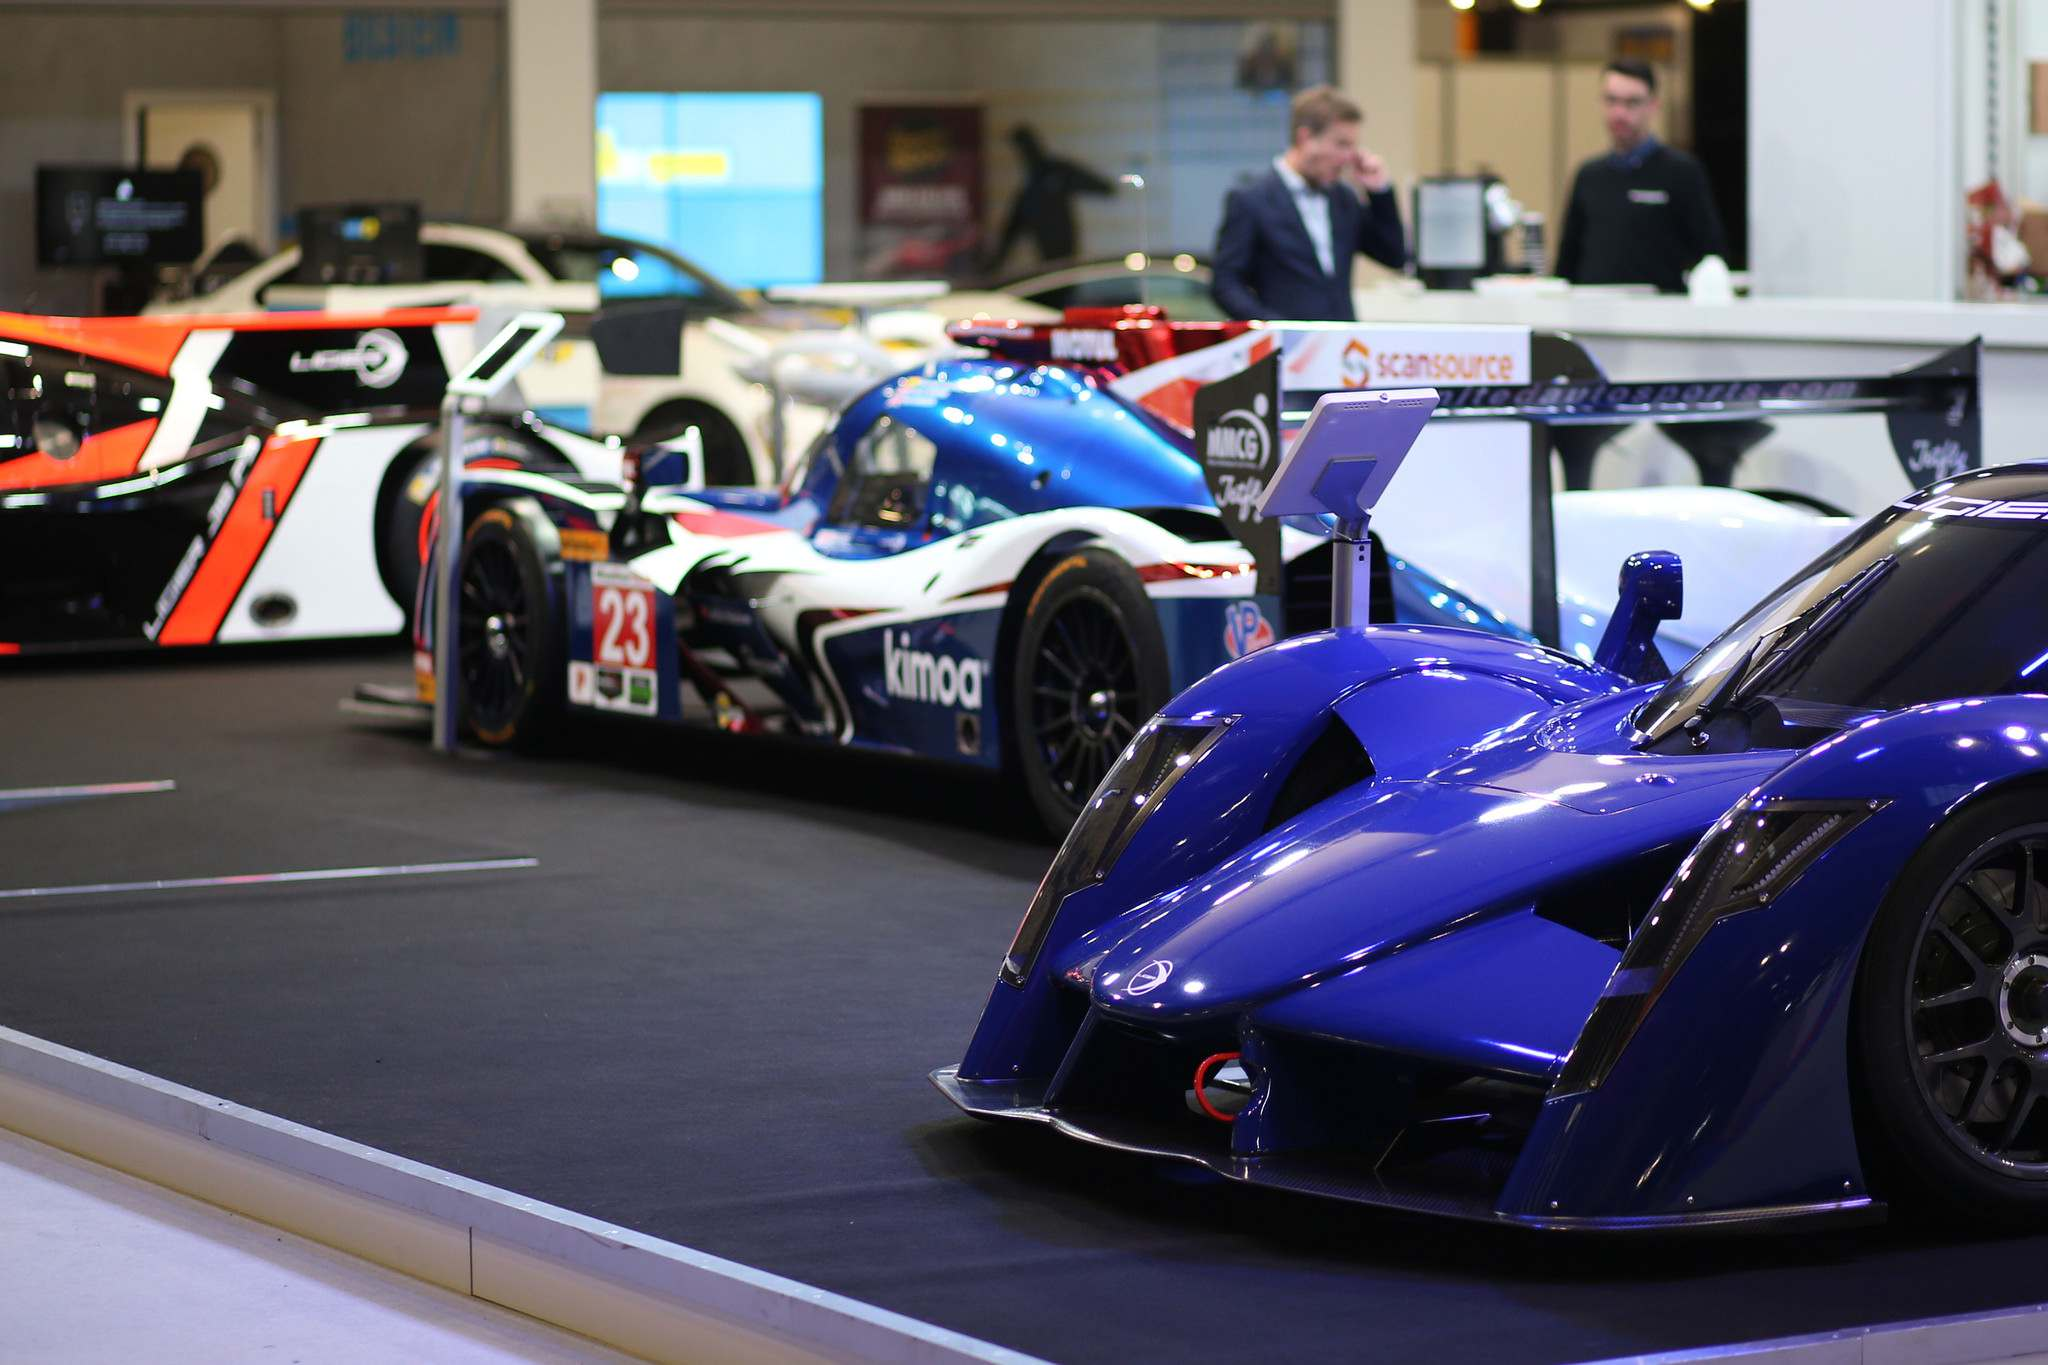 ligier 201813 Ligier at Autosport International Show 2018